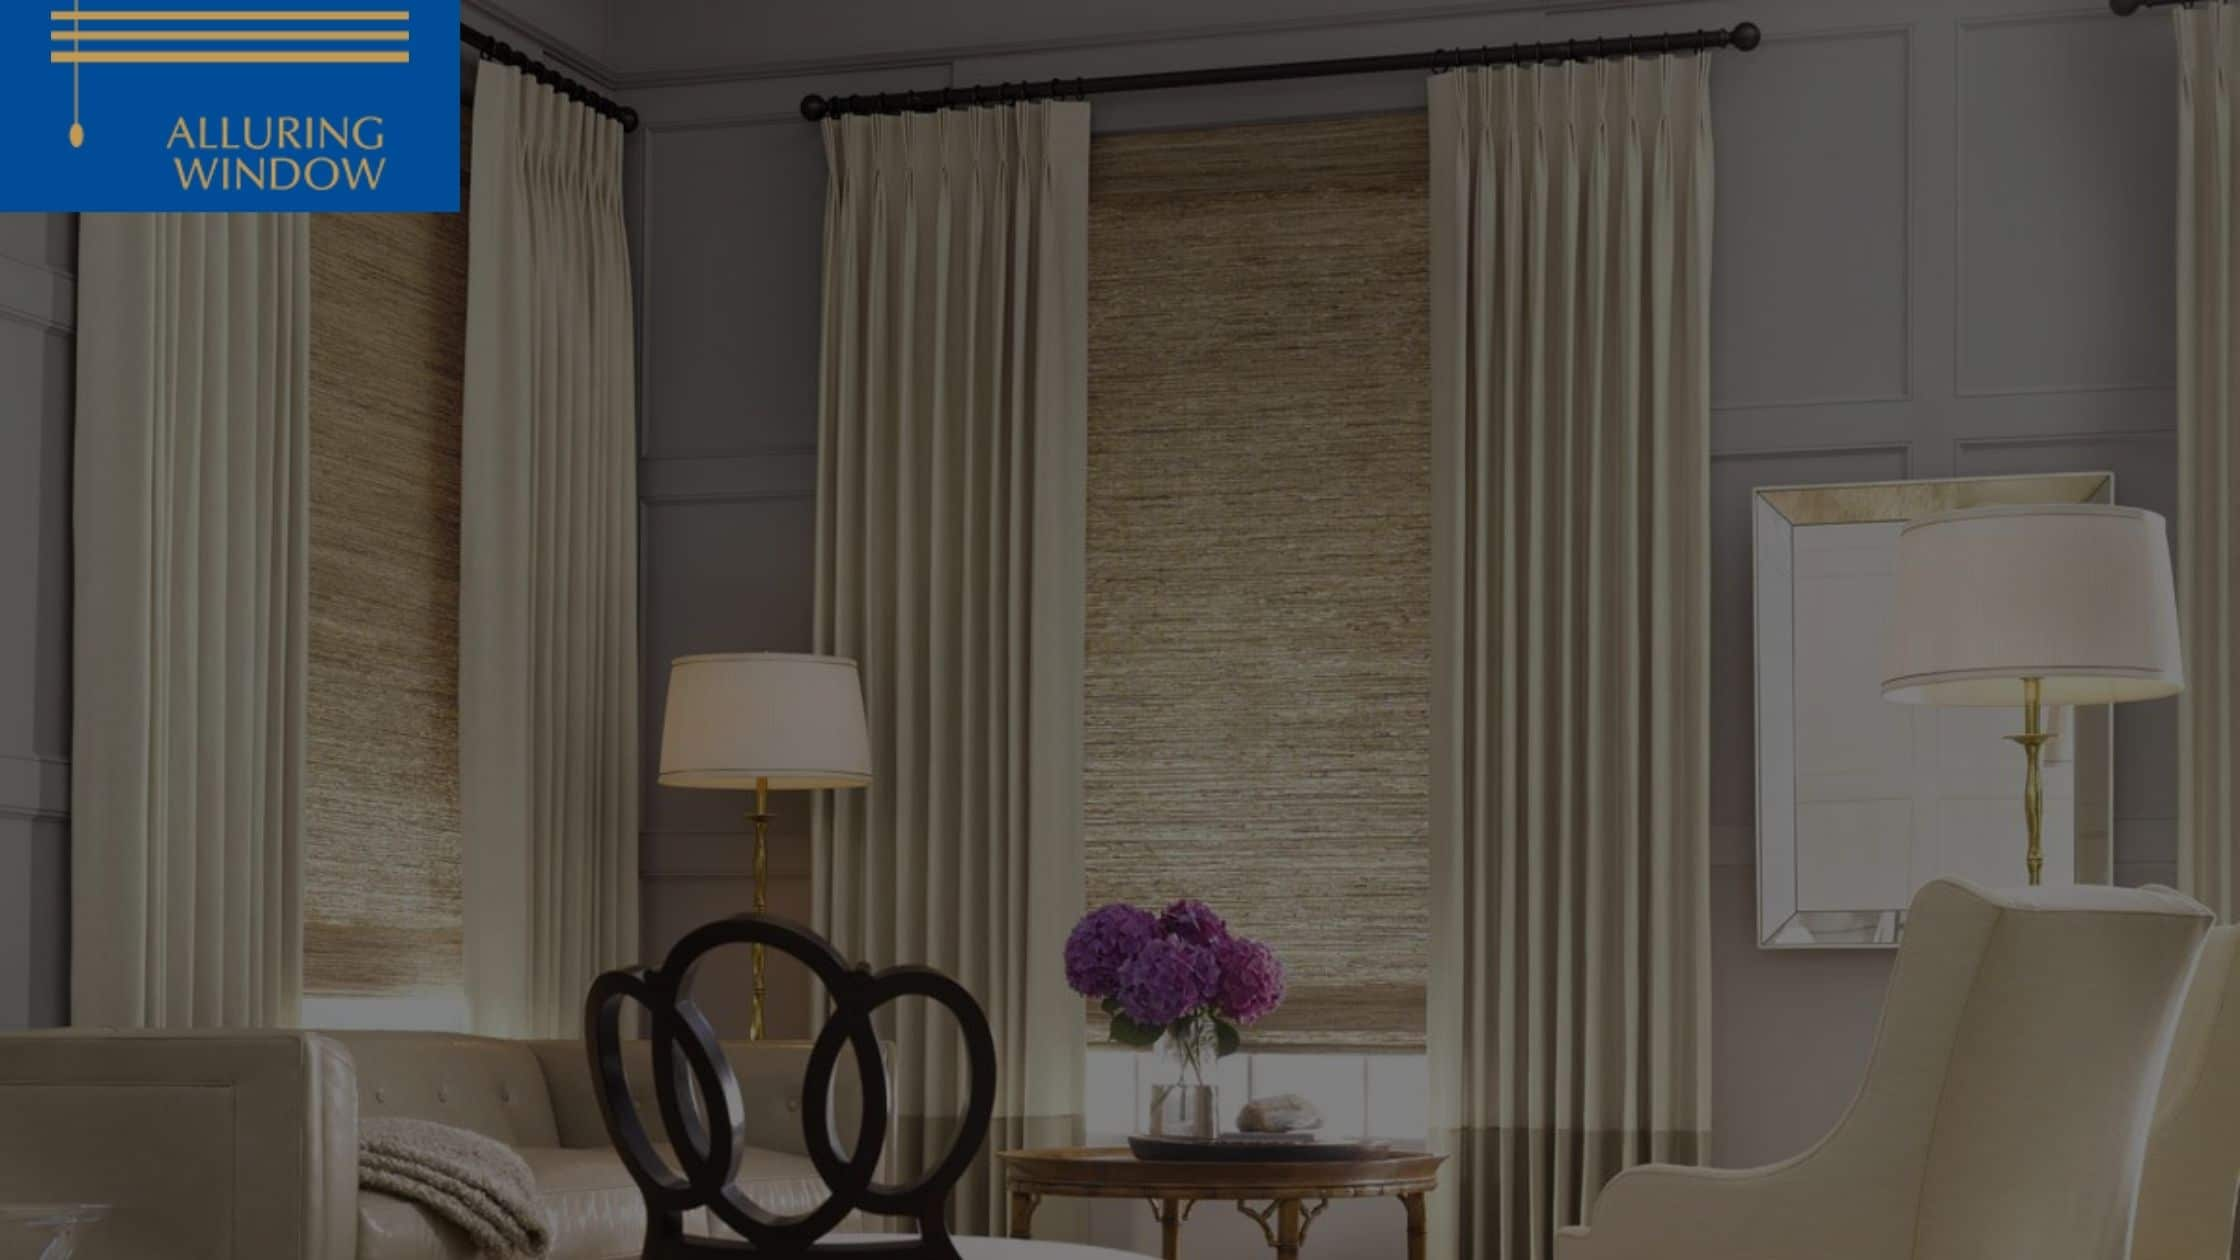 Window Treatments Style Guide for 2021 – Shades, Blinds, or Shutter?